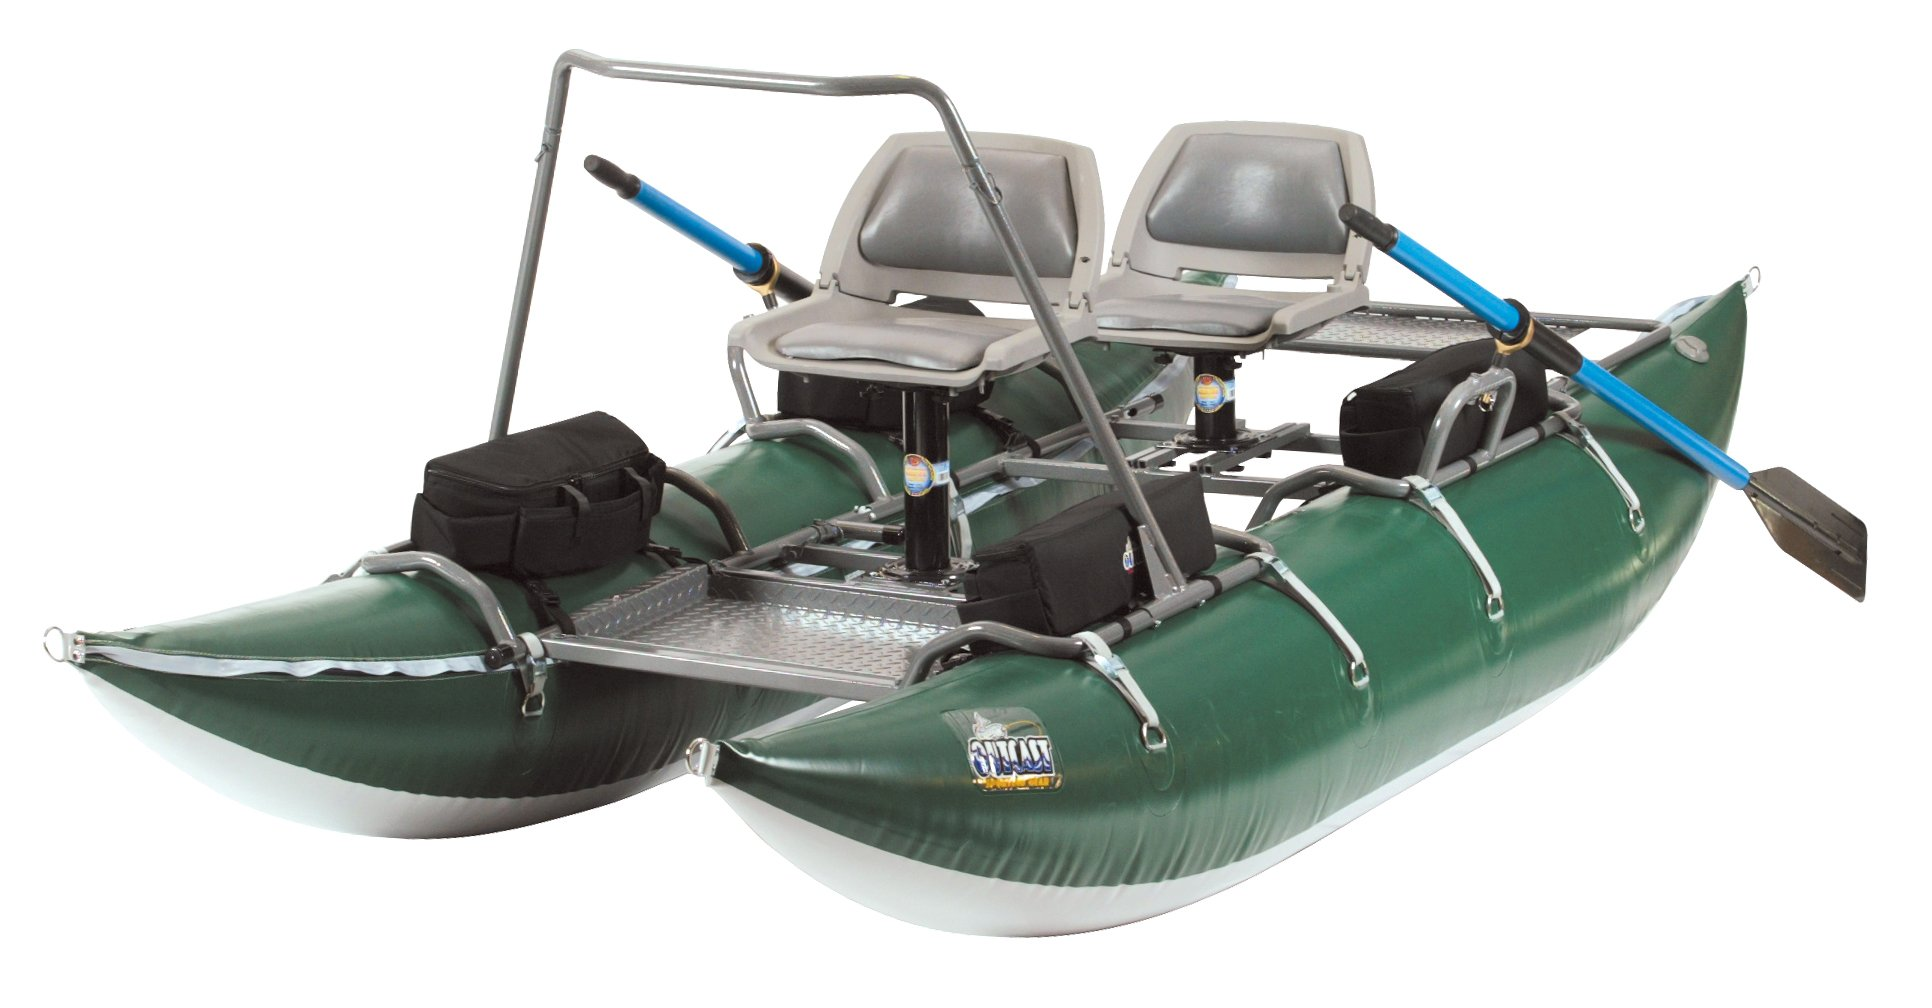 Outcast PAC 1200 Pontoon Boat with in the lower 48 US States and a $200 gift card by Outcast